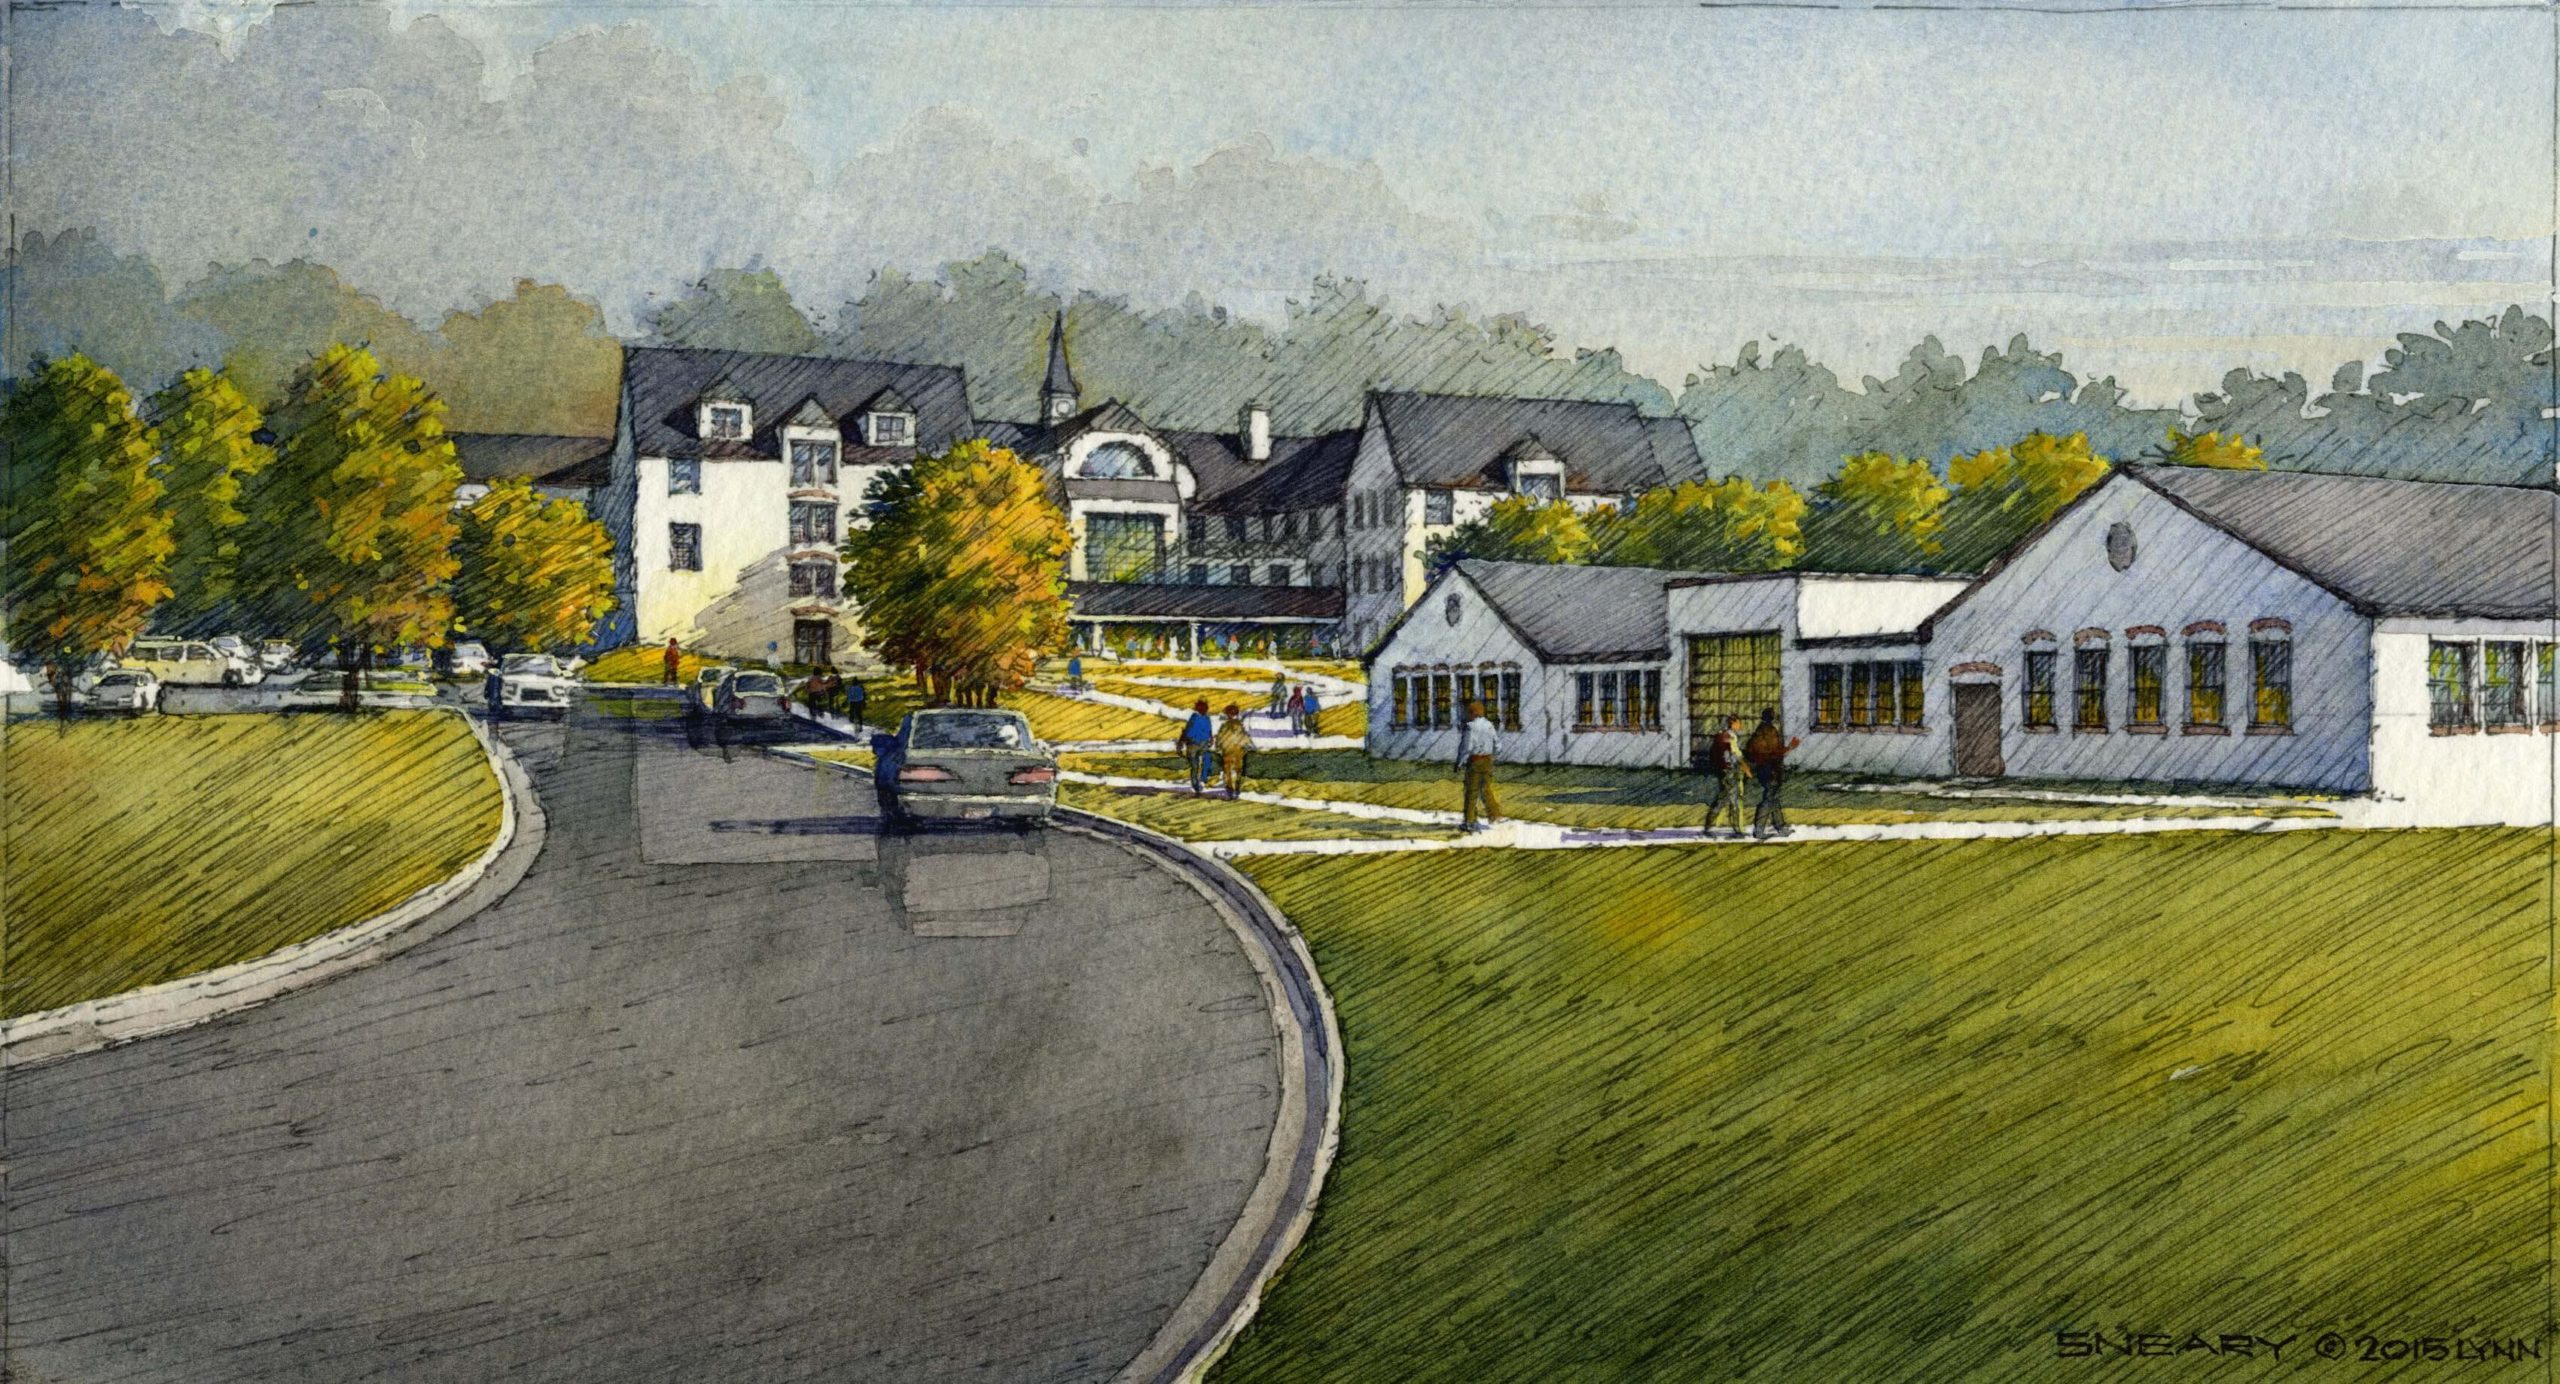 Church Farm School Launches $15 Million Campus Modernization Project